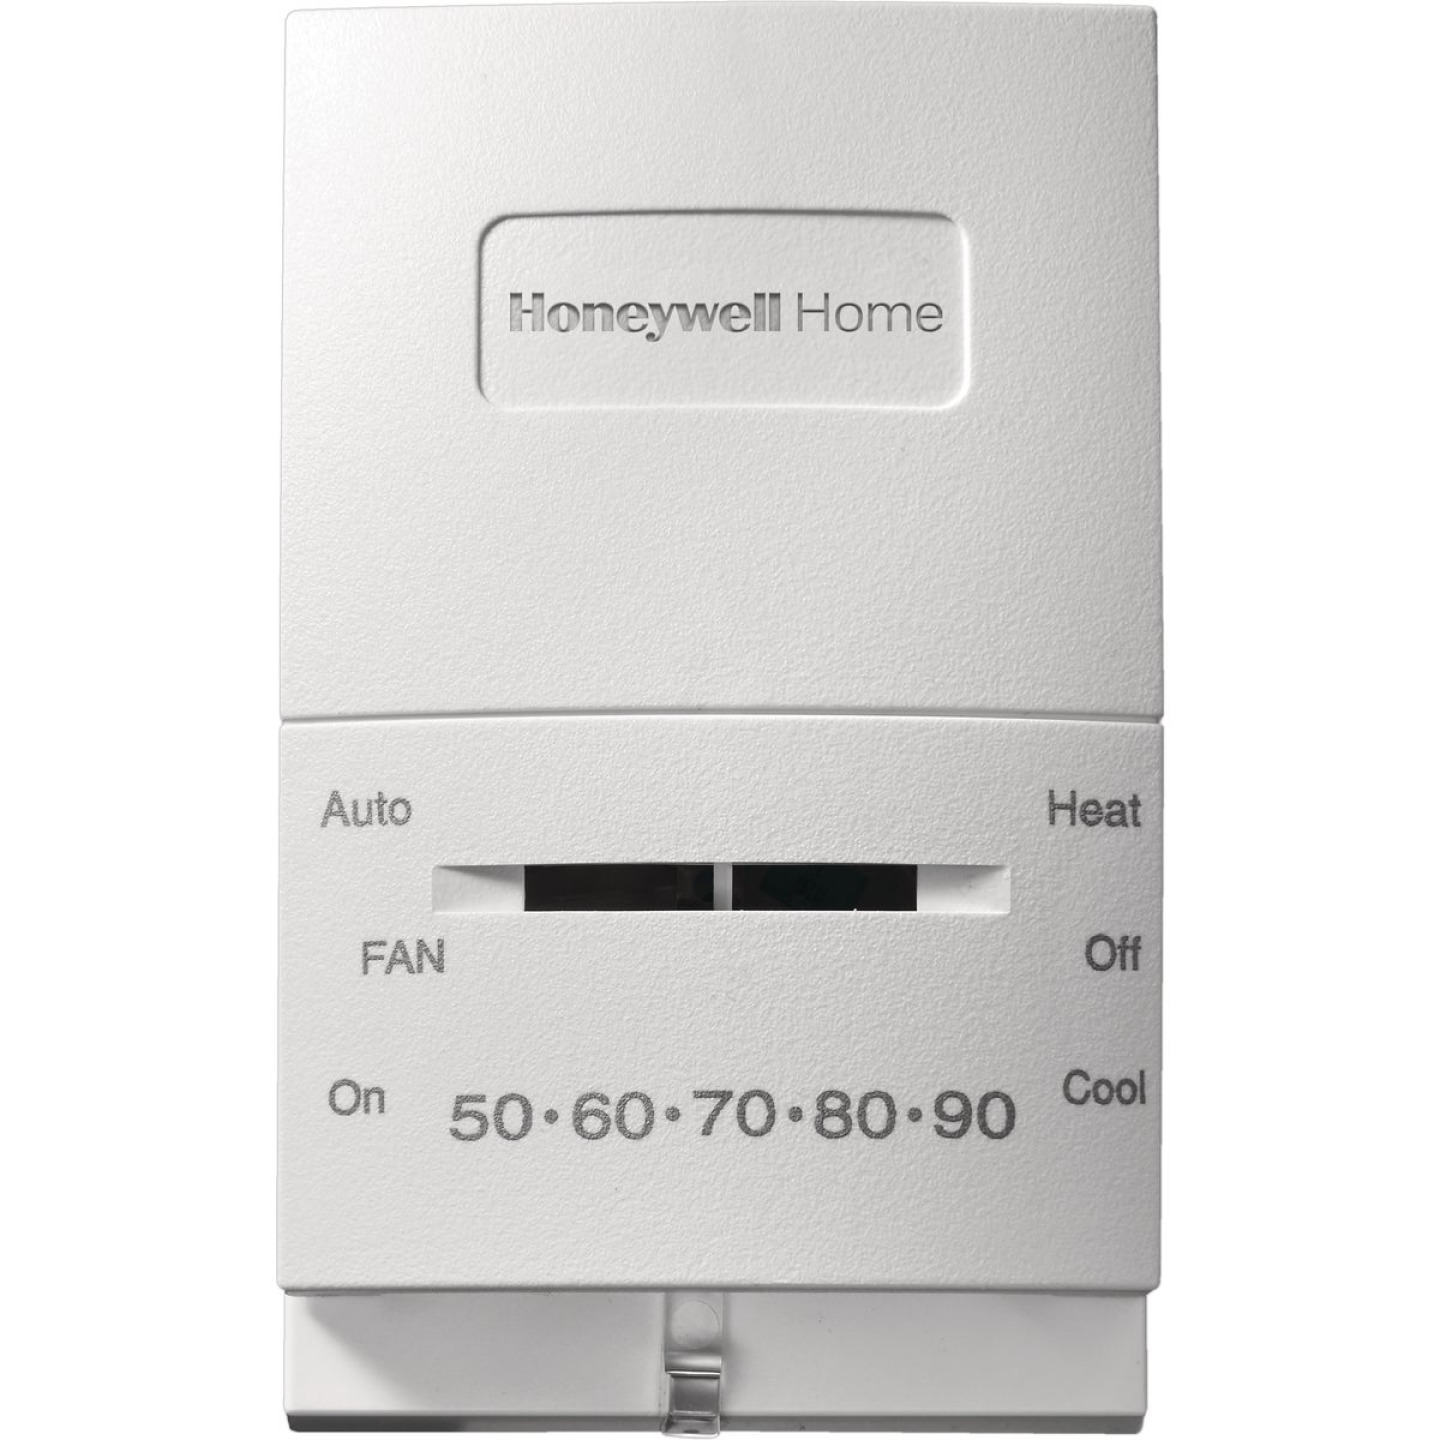 Honeywell 55 F to 85 F Off-White Mechanical Thermostat Image 1